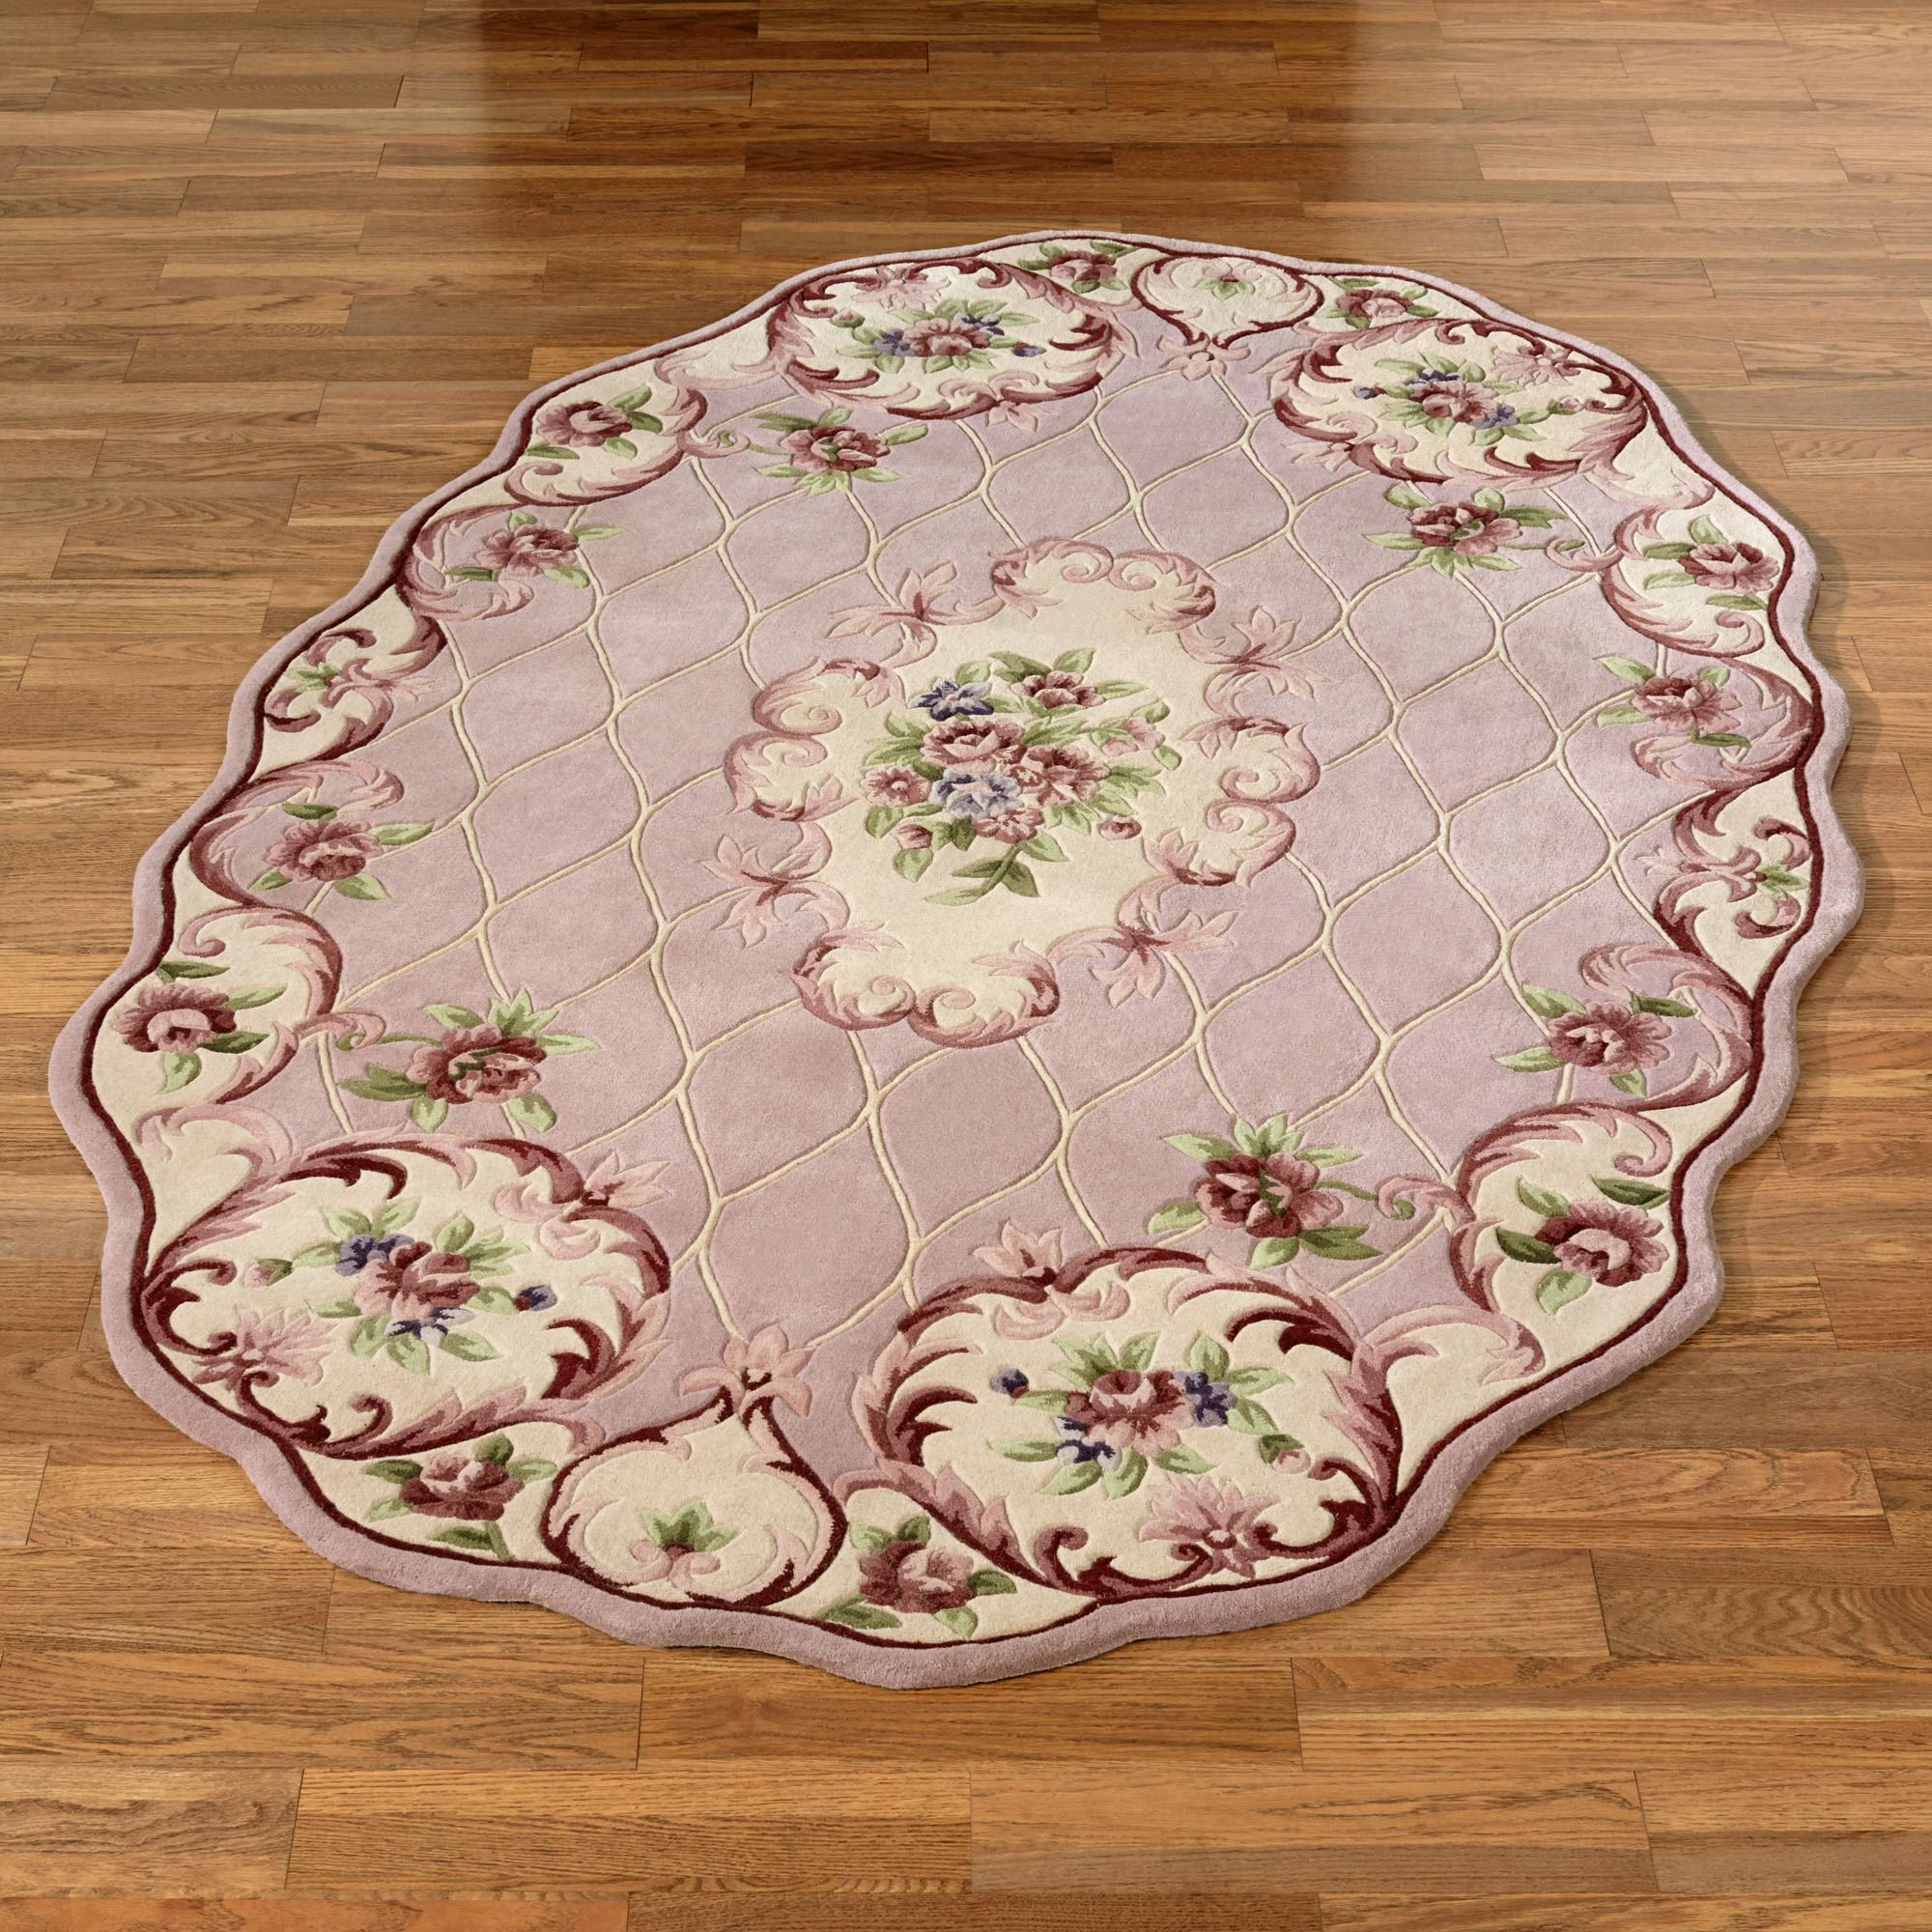 Marquis aubusson floral scalloped area rugs area rugs